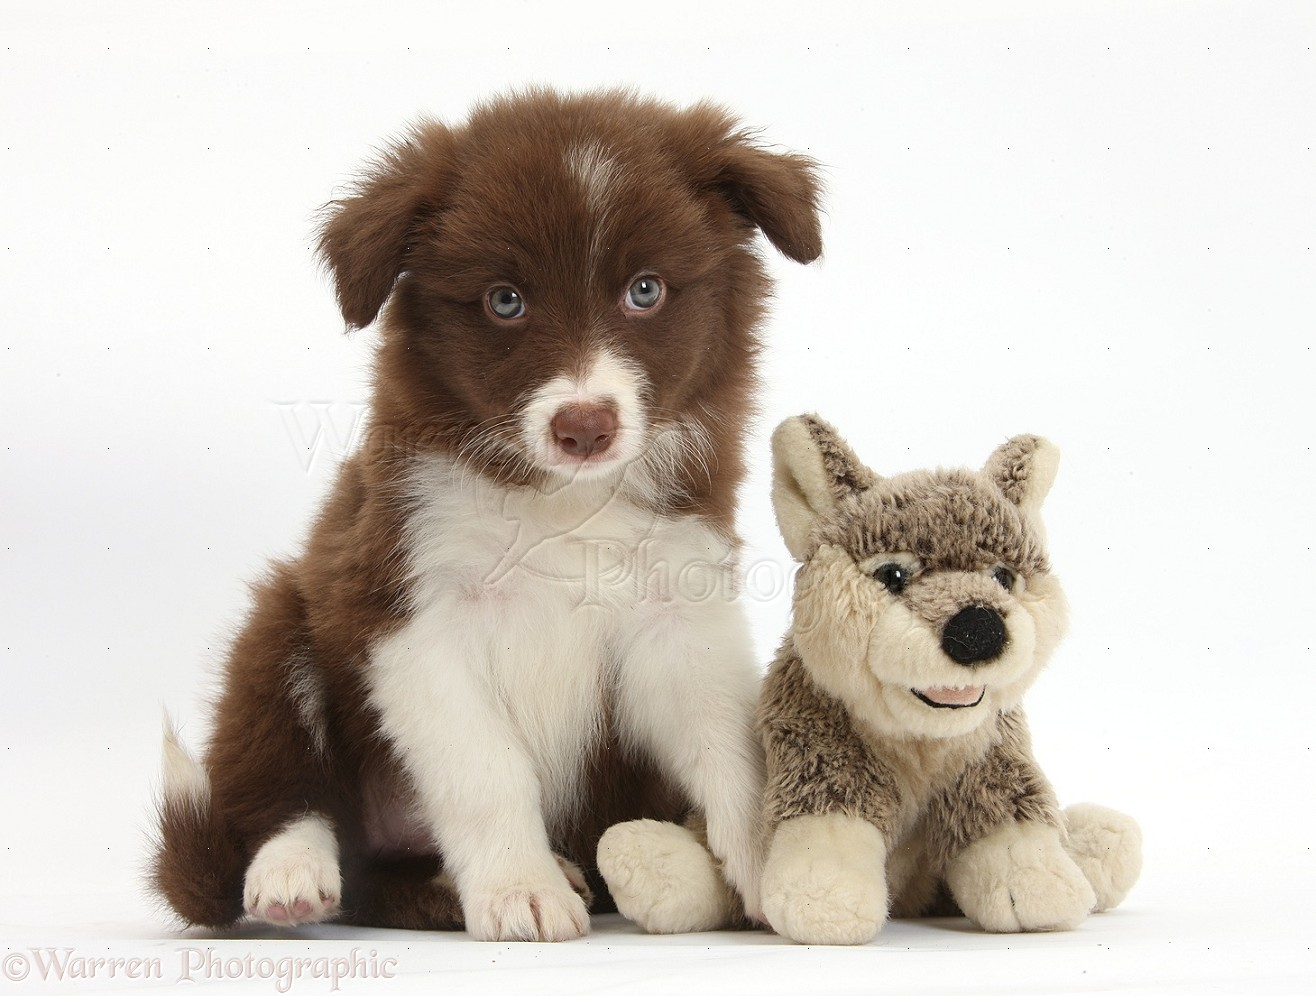 Dog: Chocolate Border Collie pup and wolf soft toy photo - WP36039